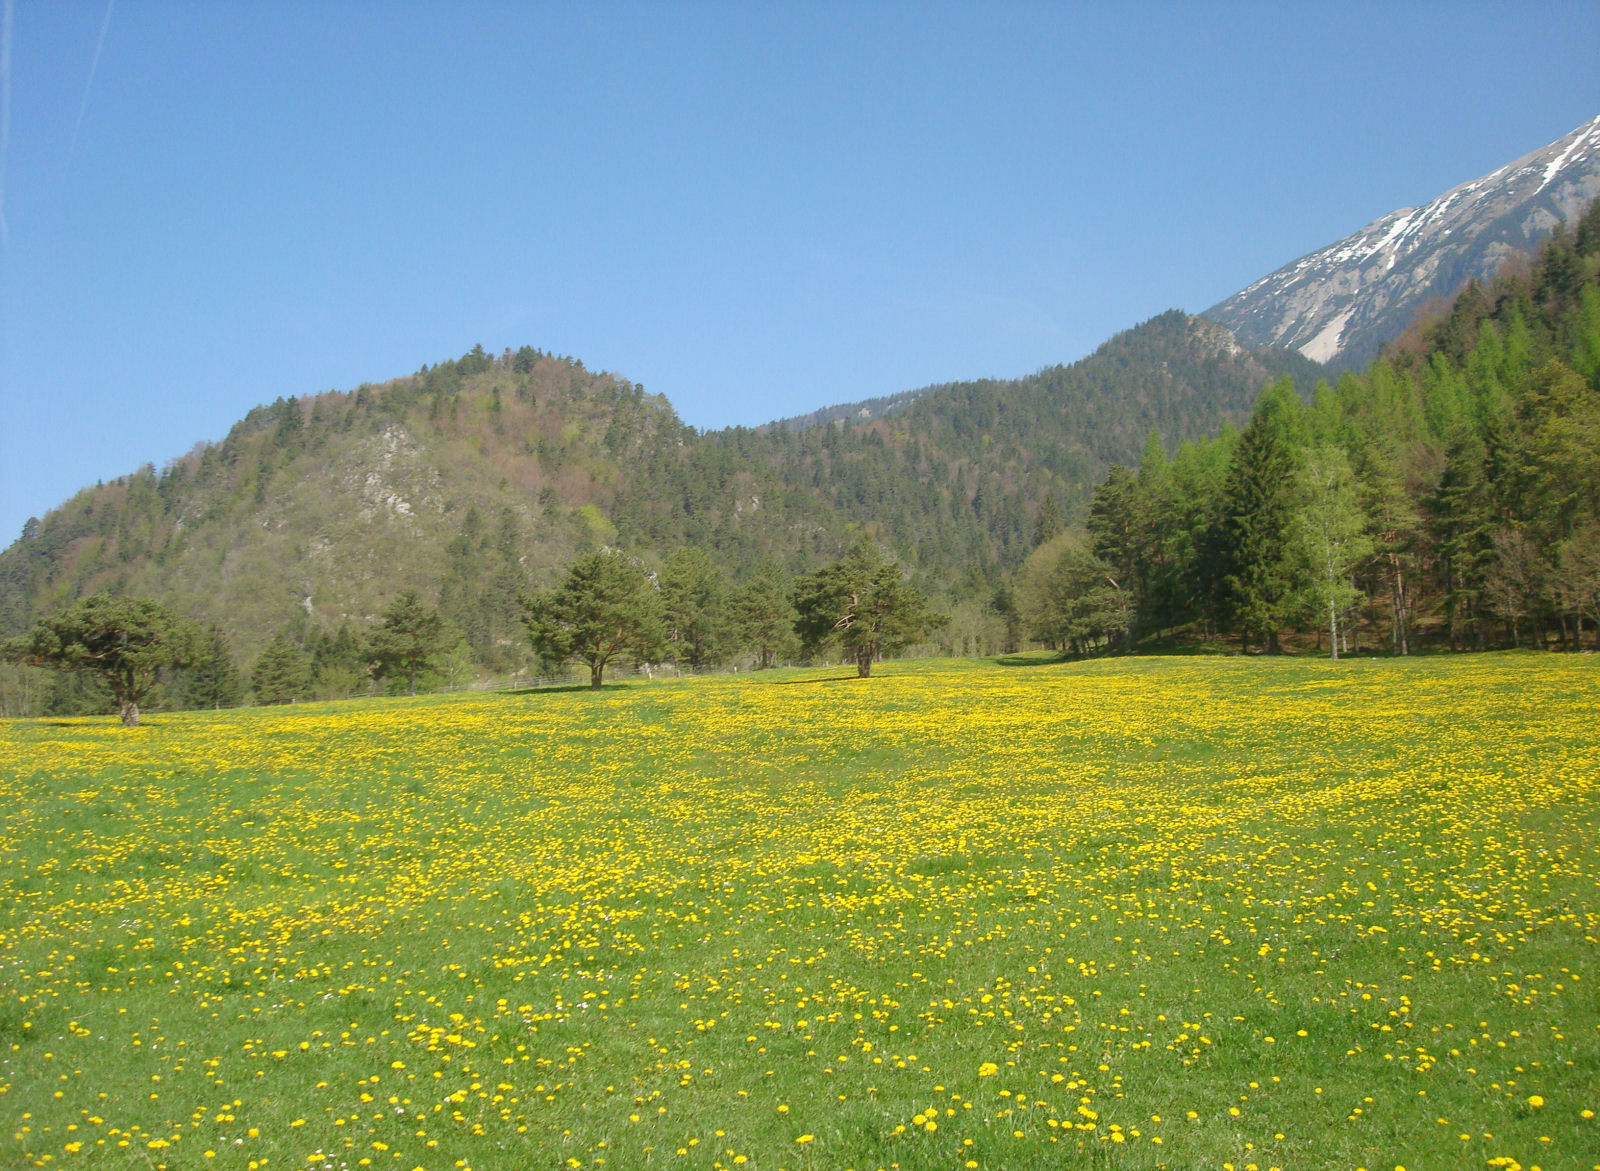 Yellow dandelion meadows in the spring in the Zavrsnica valley, Slovenia